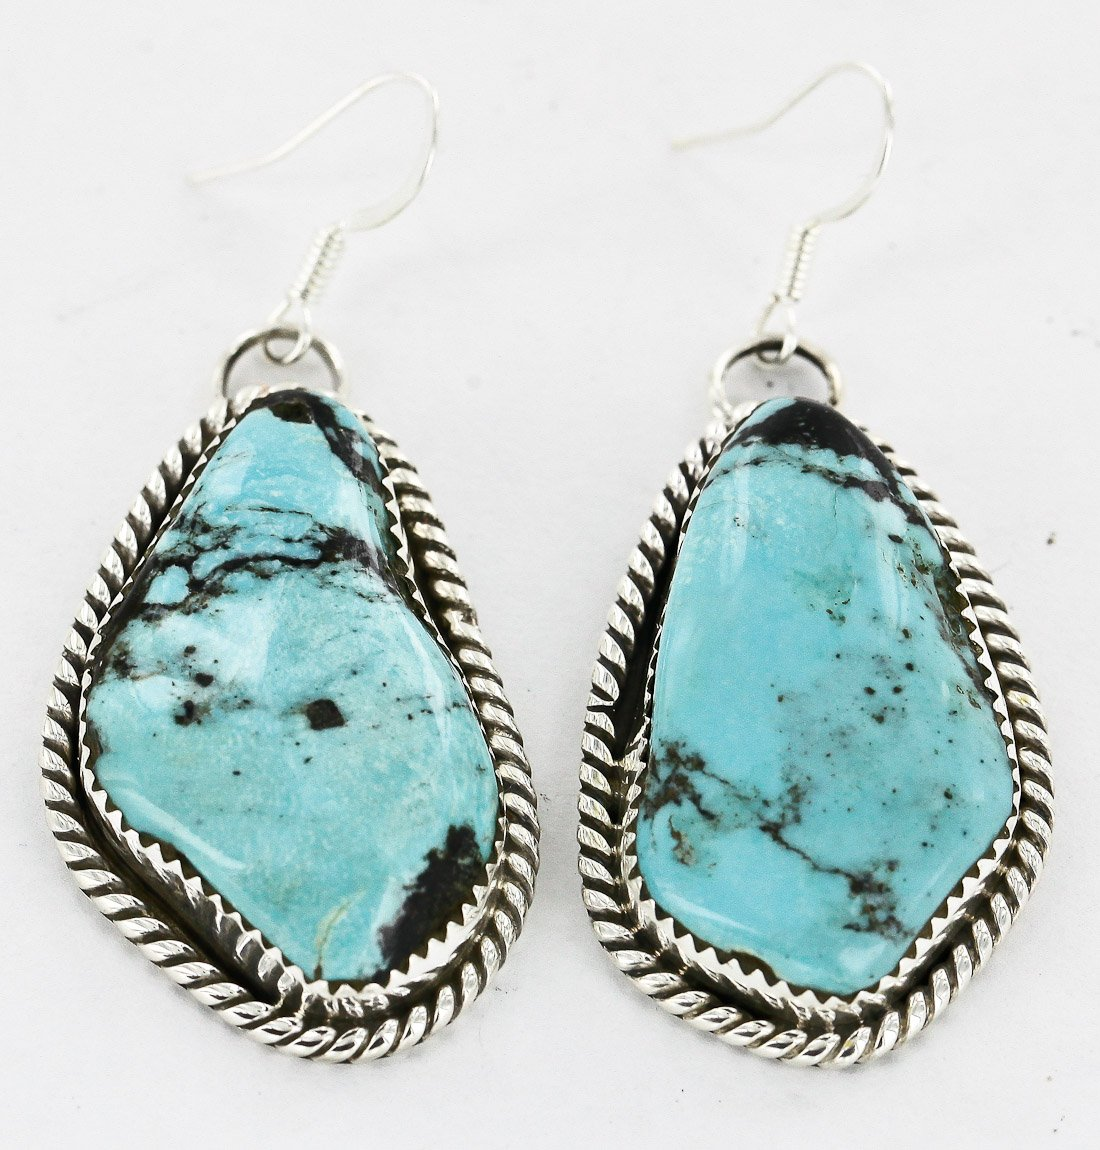 $400 Retail Tag Authentic Handmade Made by Robert Little Navajo Silver Dangle Native American Earrings Natural Turquoise